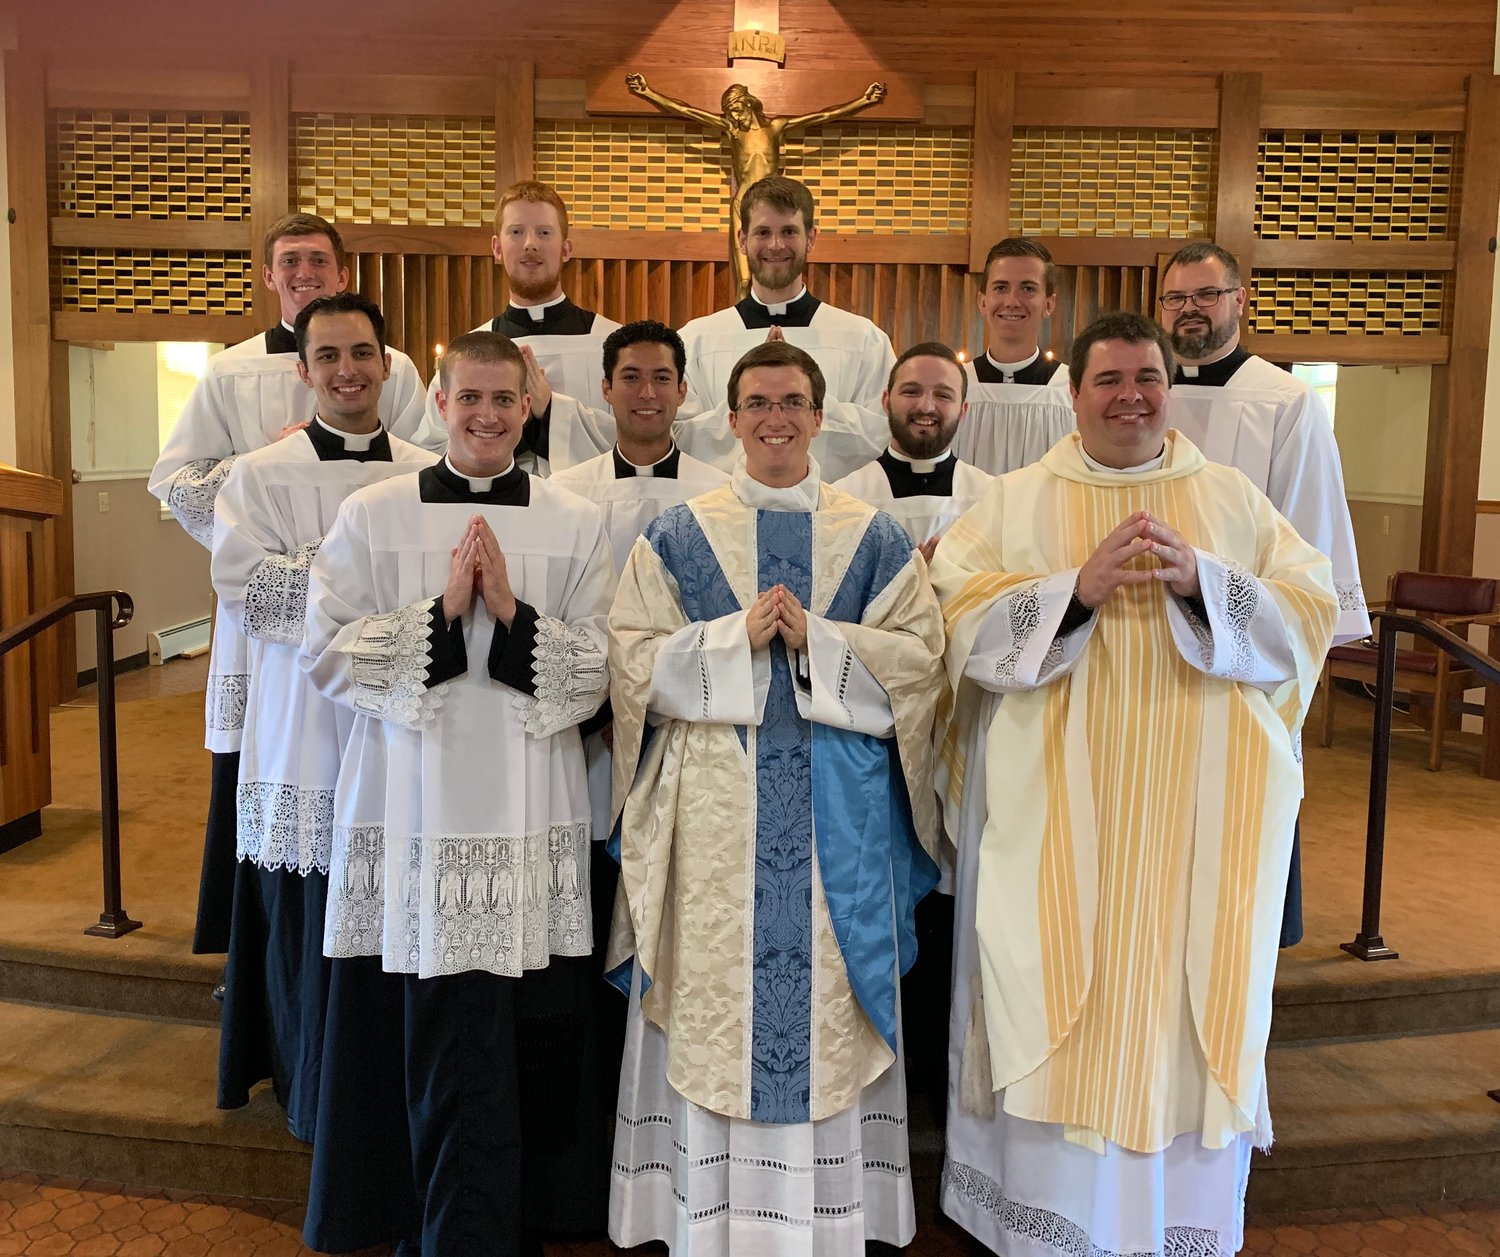 Newly ordained Father Brad Berhorst (center) joins Father Joshua Duncan, Father Christopher Aubuchon and semi-narians of the Jefferson City diocsese in the sanctuary of St. Martin Church in St. Martins following Fr. Berhorst's Mass of Thanksgiving there on June 30.